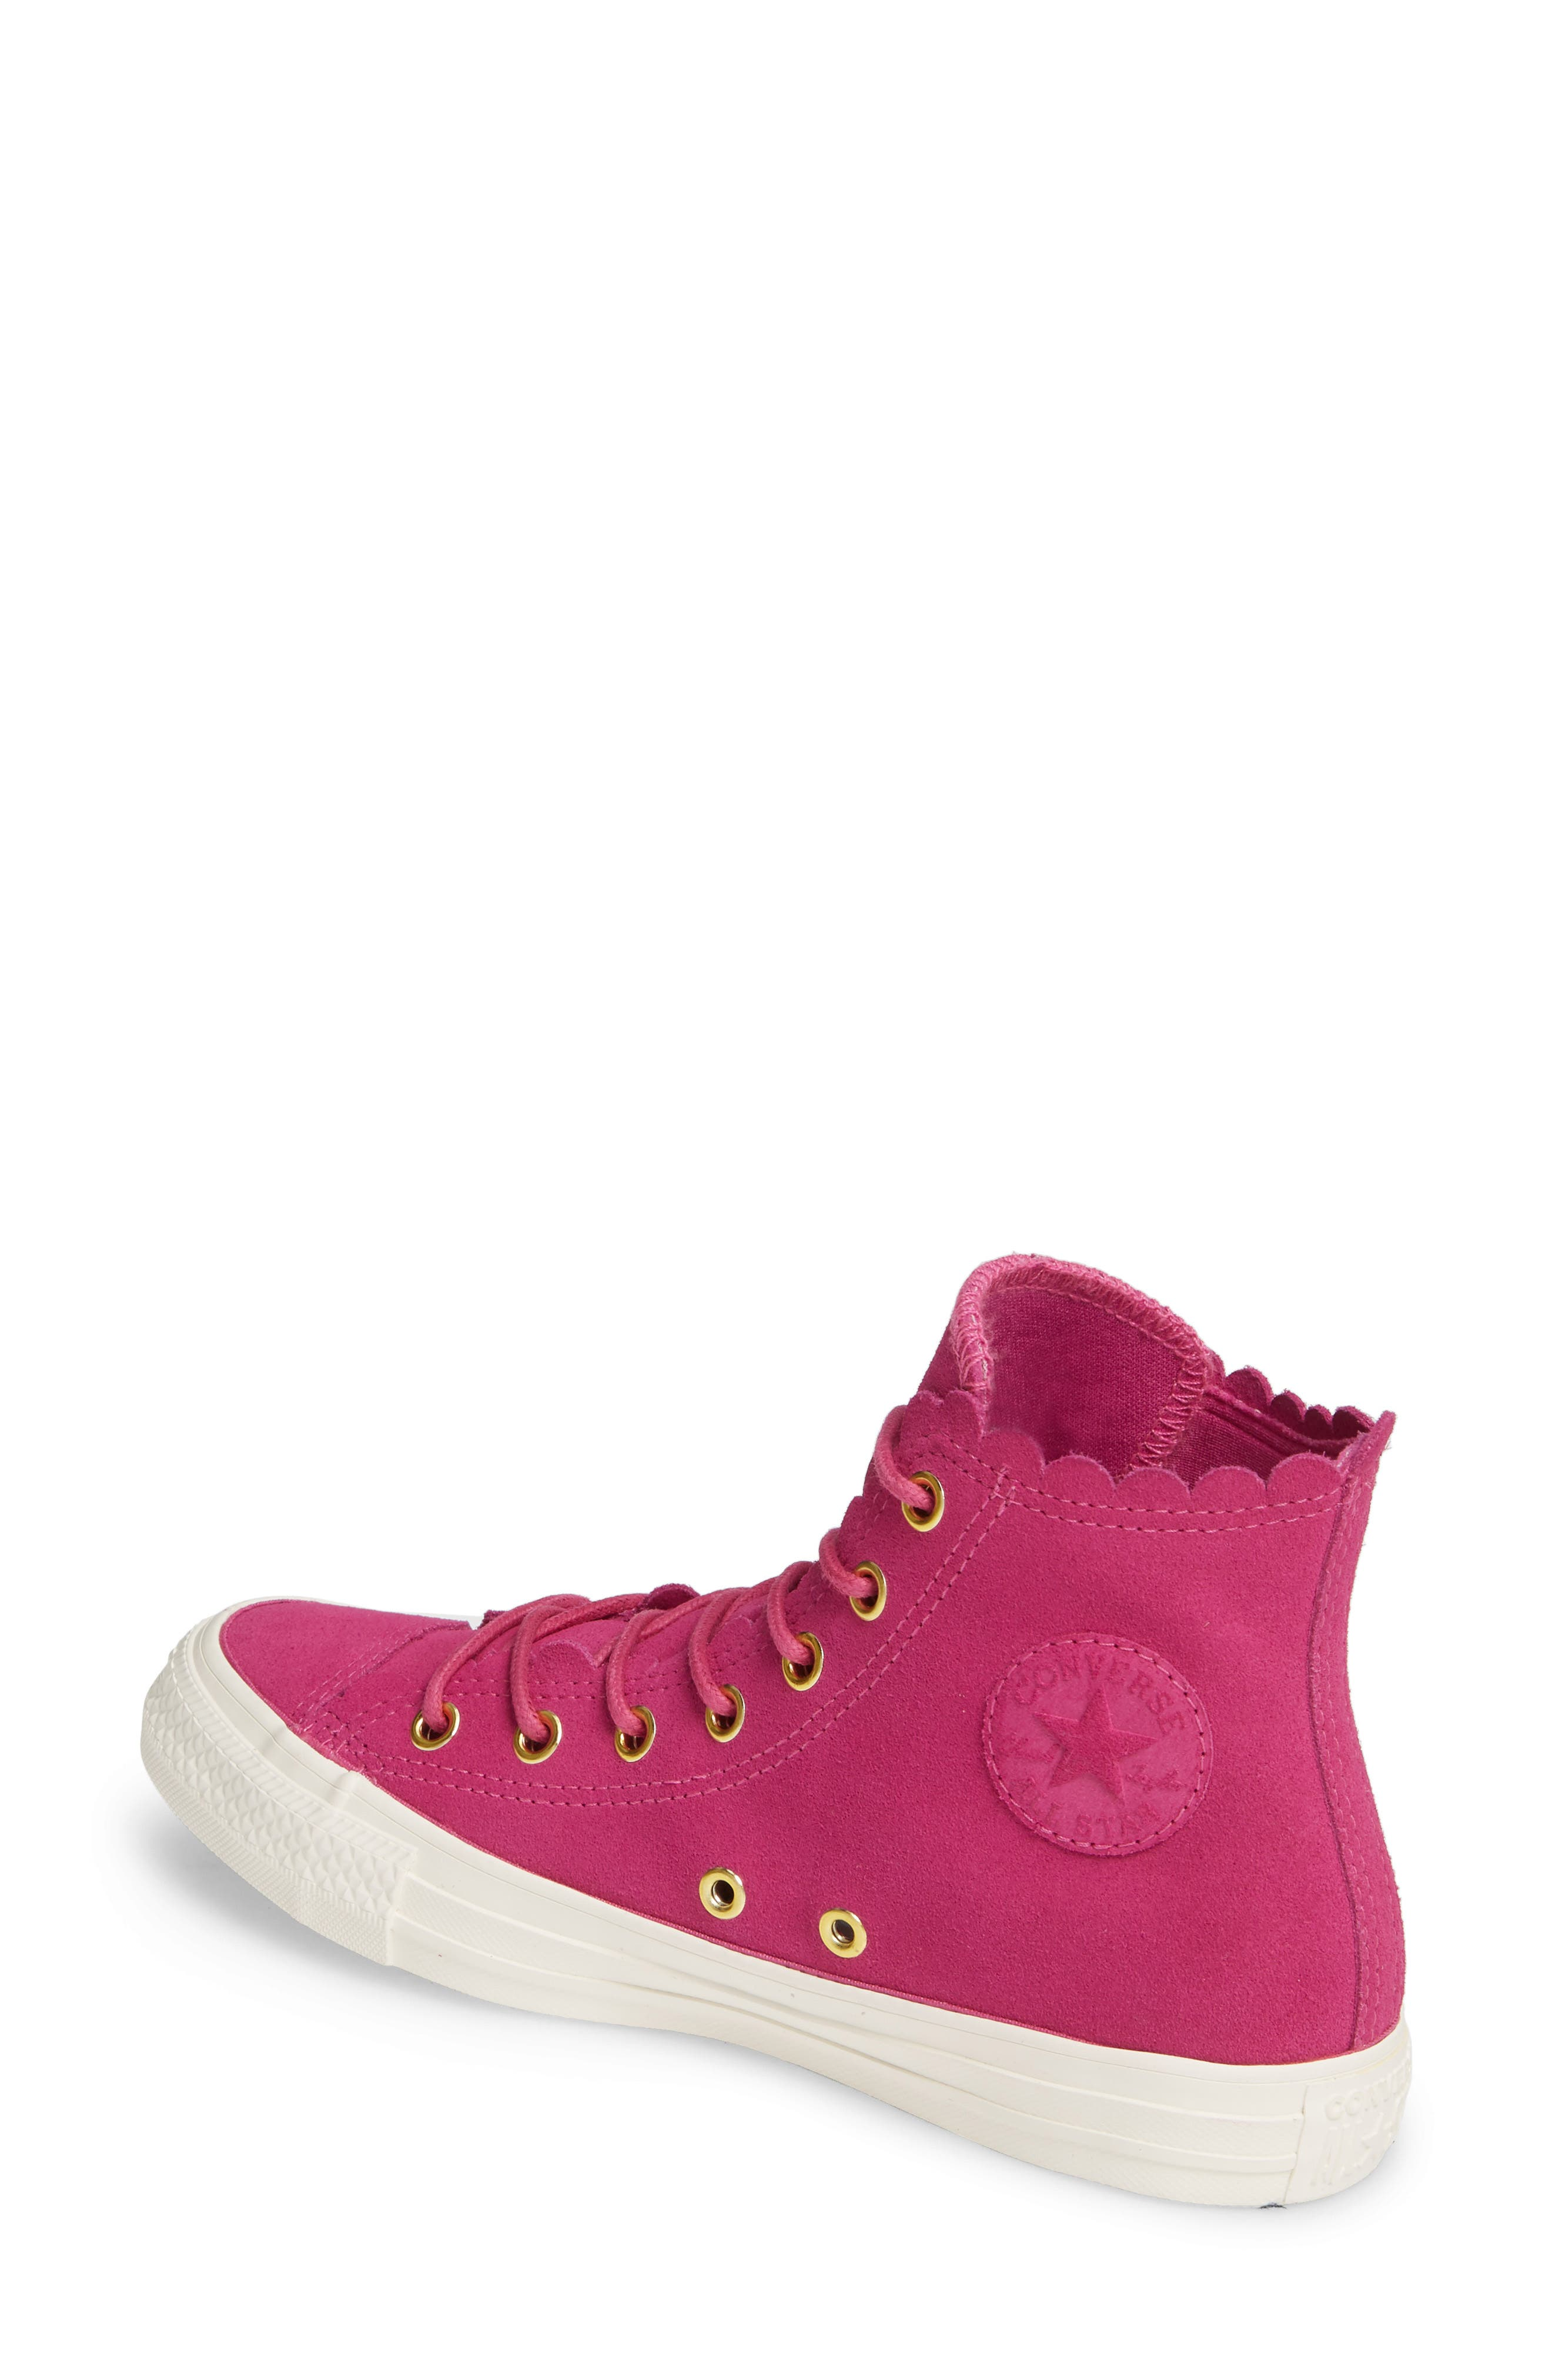 CONVERSE, Chuck Taylor<sup>®</sup> All Star<sup>®</sup> Scallop High Top Suede Sneaker, Alternate thumbnail 2, color, ACTIVE FUCHSIA/ GOLD/ EGRET